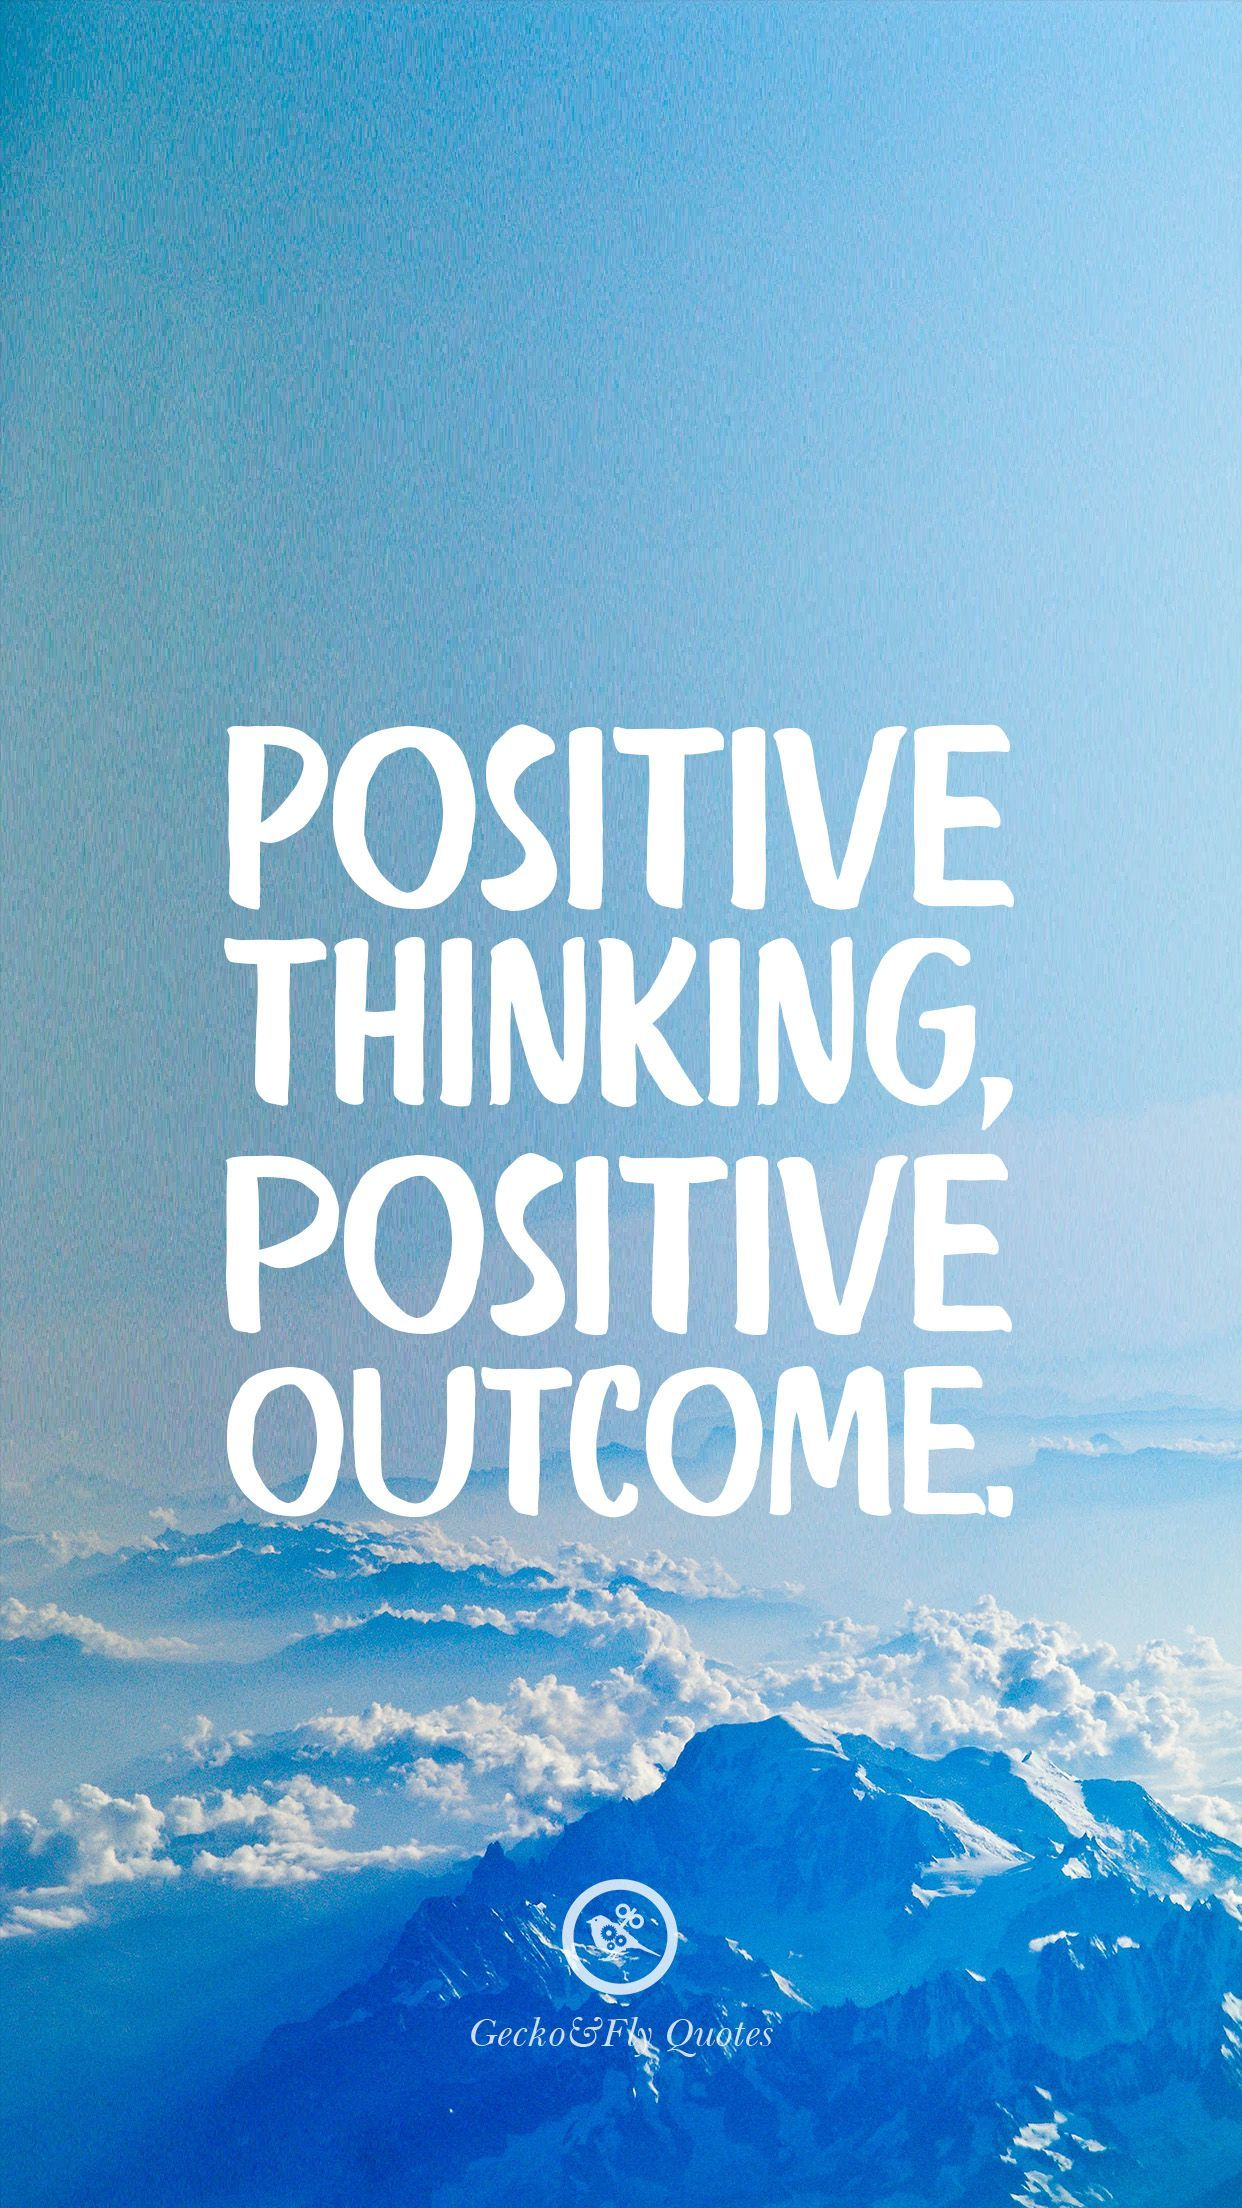 Top Positive Thinking Inspirational Quotes Wallpaper 45 With Additional Best Book Hd Wallpaper Quotes Positive Wallpapers Iphone Wallpaper Quotes Inspirational